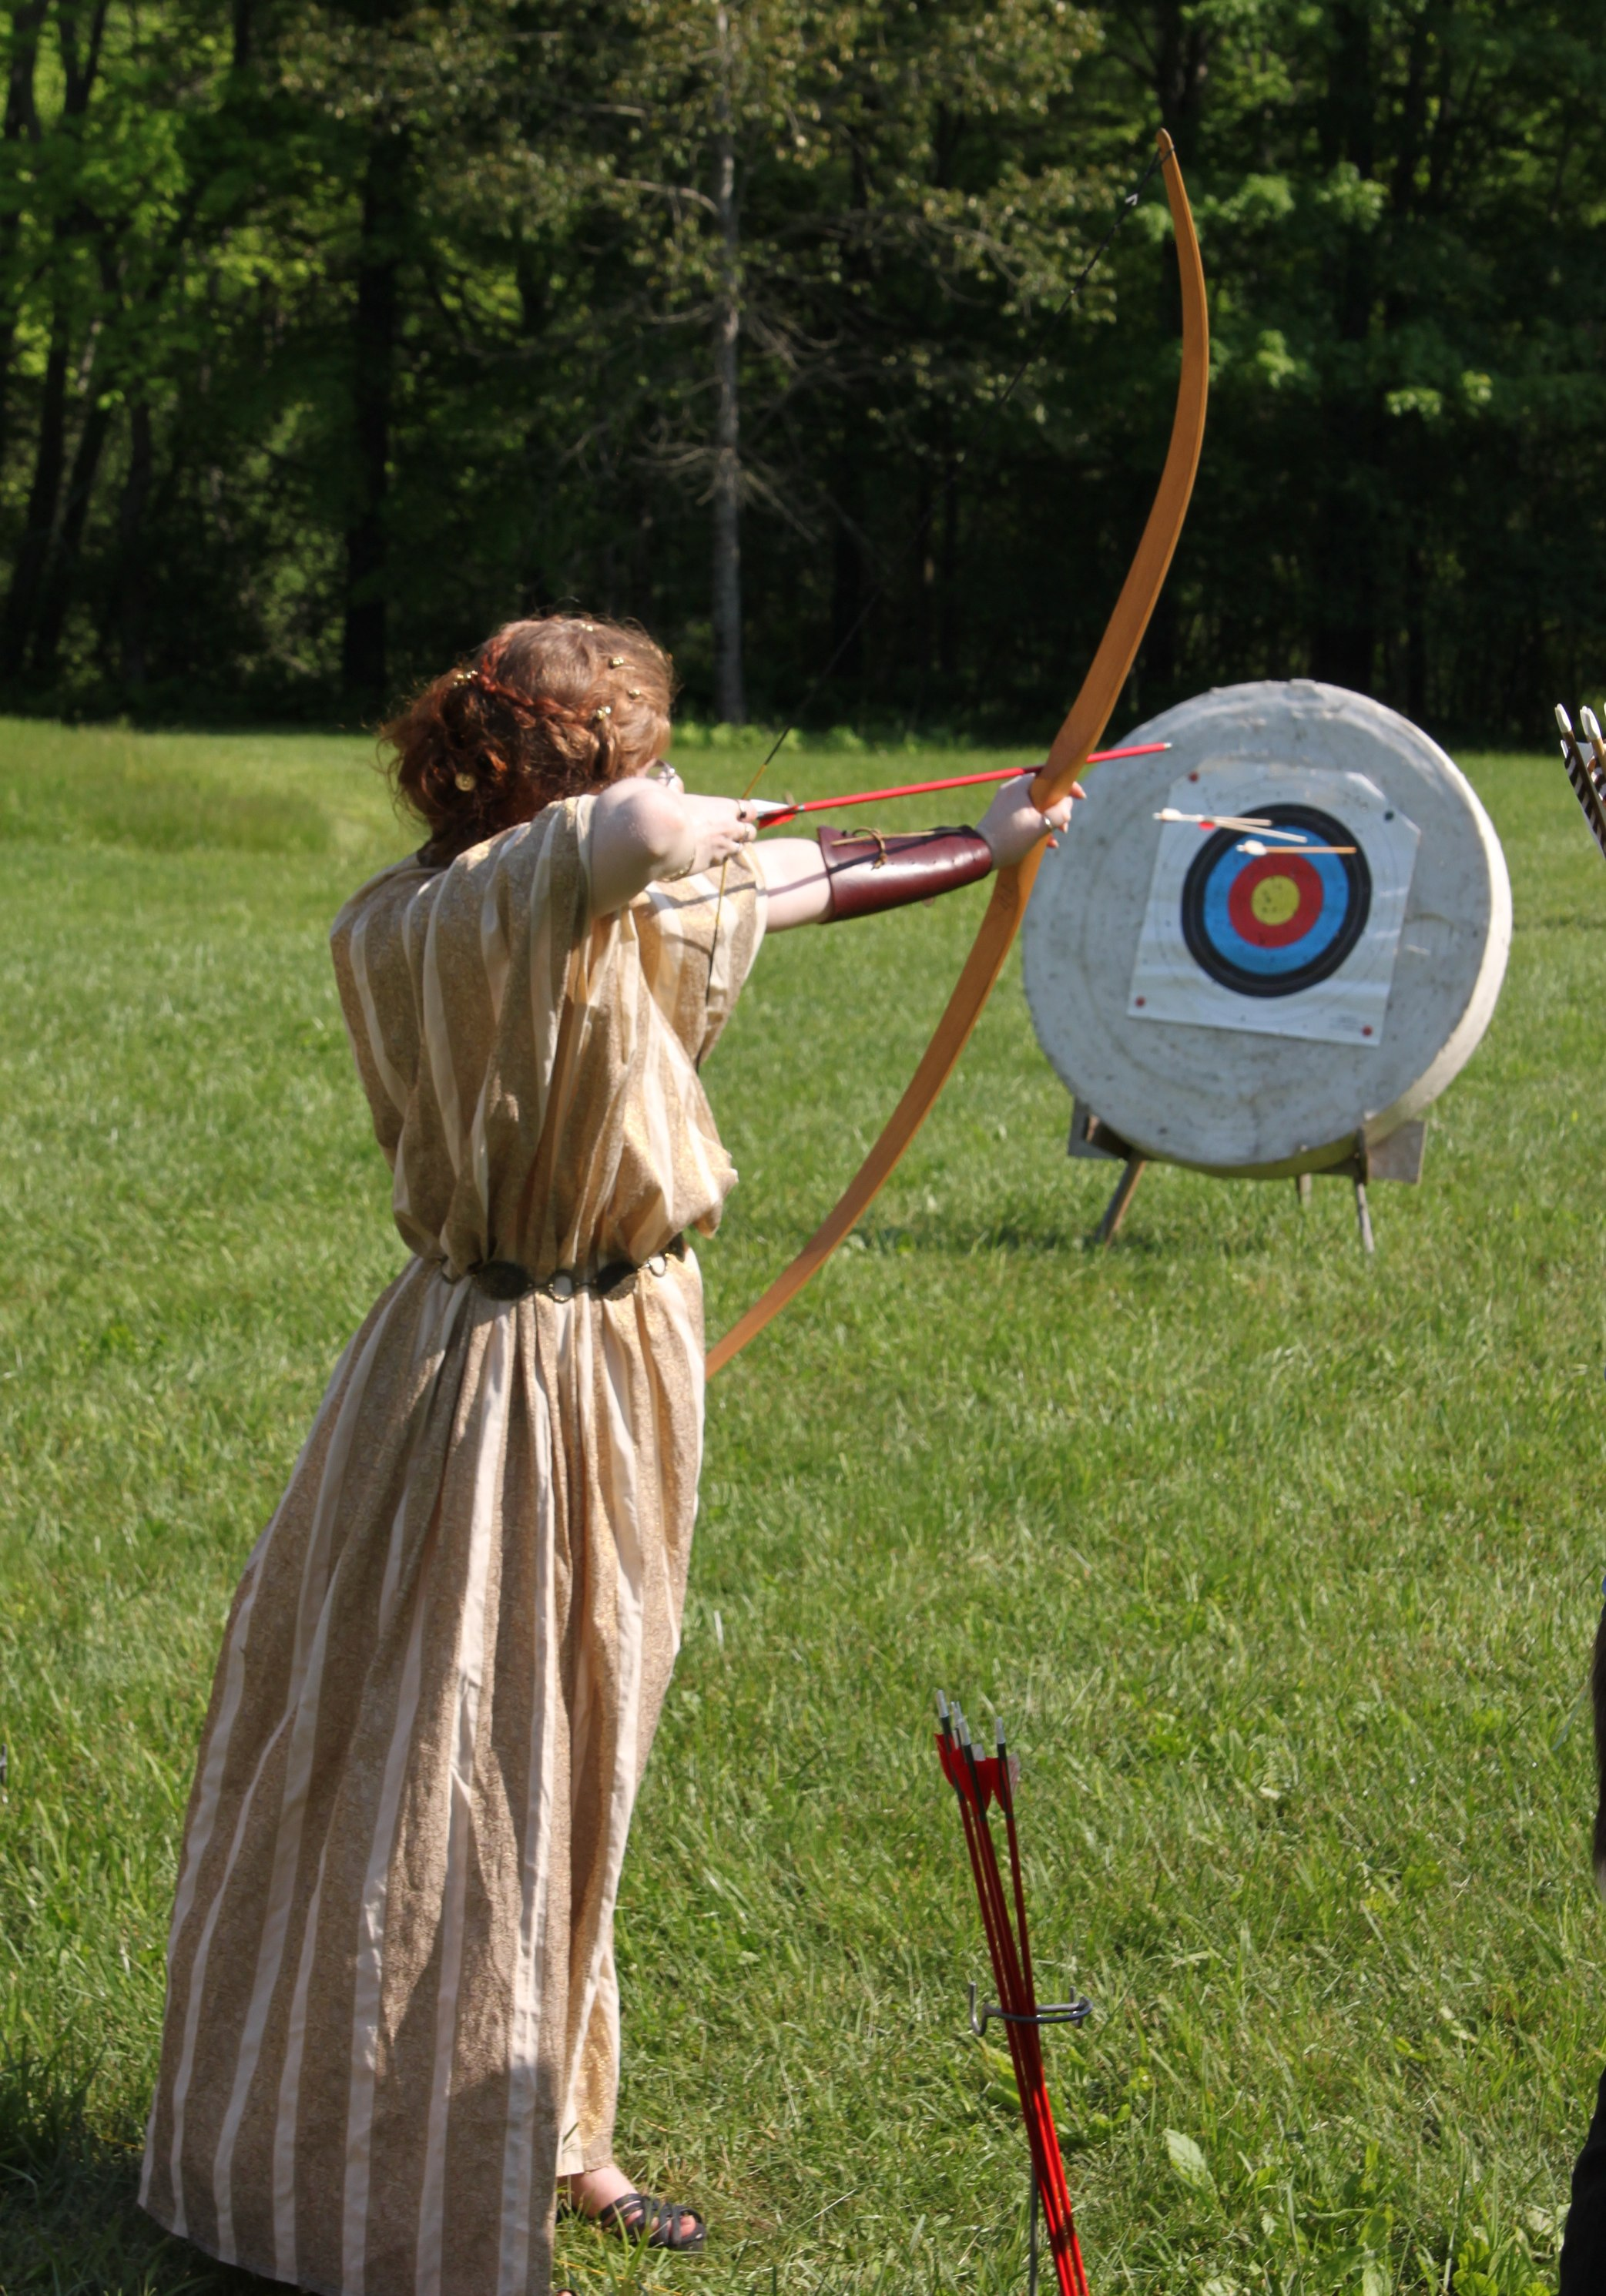 Lady archer at Panteria 2012